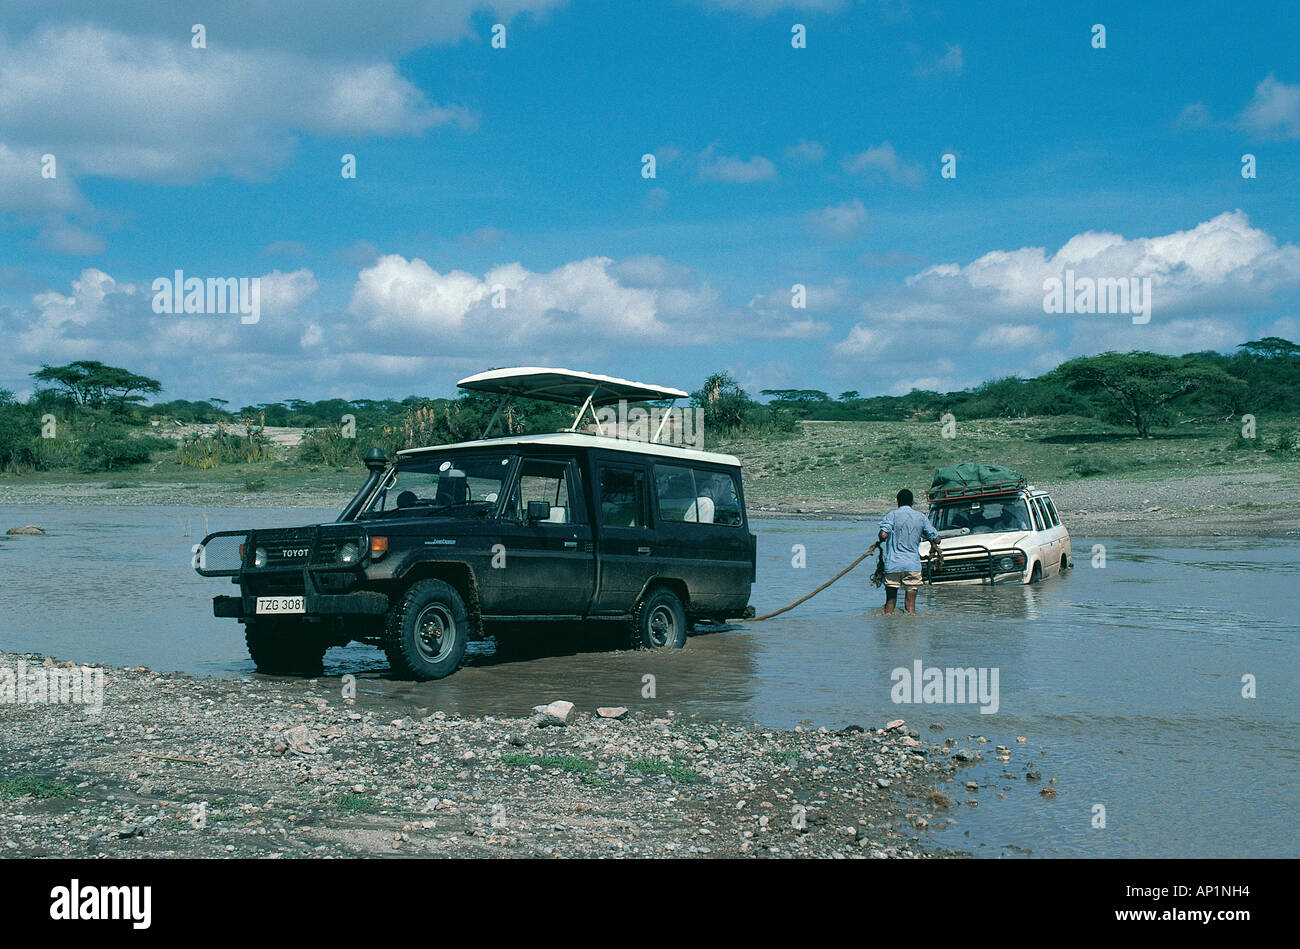 Toyota Landcruiser being prepared to tow another vehicle out of the Ol Duvai River in northern Tanzania East Africa - Stock Image